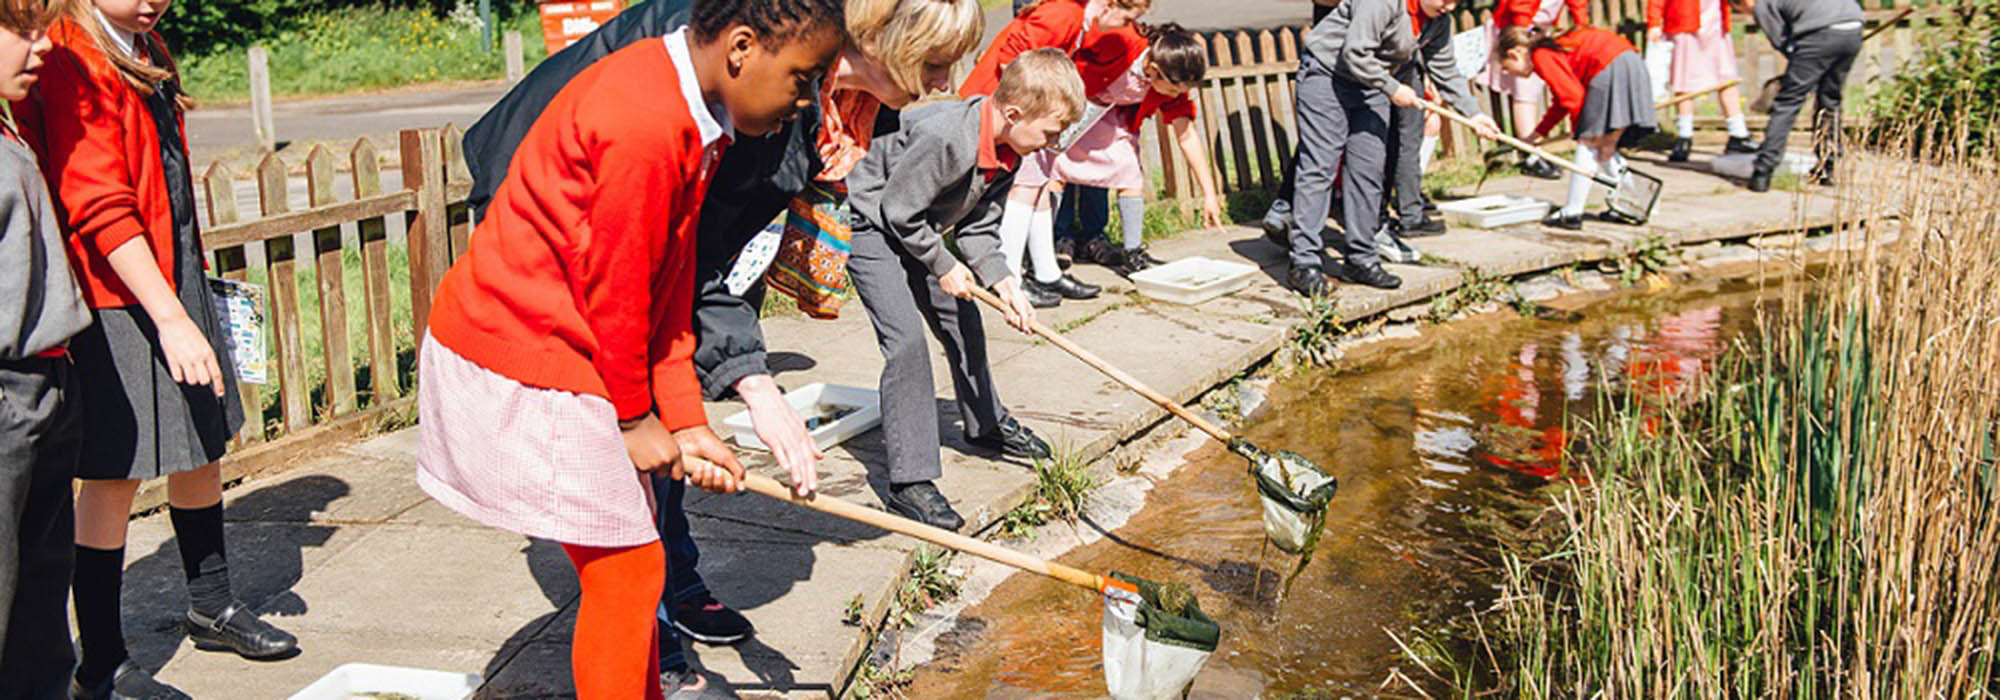 children In school uniform pond dipping